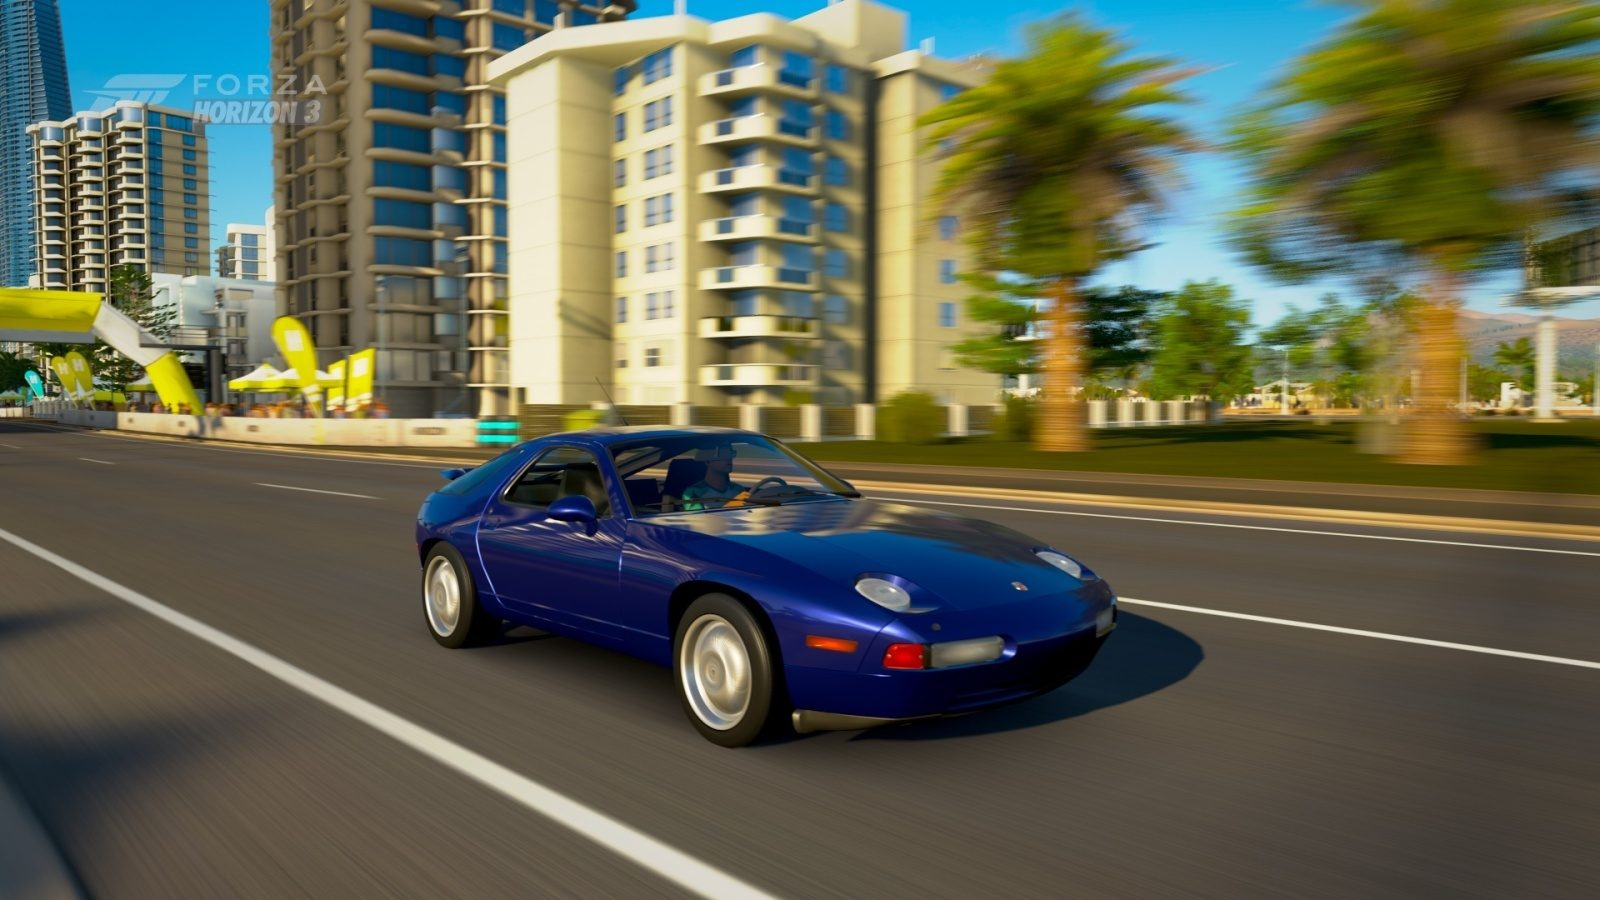 planet sport live f1 with Porsche 928 Gts 914 Forzathon August on Bugatti Veyron also Harriet Cass And Charlotte Green To Leave Bbc Radio 4 together with MRD 404867806 Amazon Fire Tv Stick Kodi Xbmc Peliculashd Y Series Gratis  JM further Felix Baumgartner Busca Ser El Primer Hombre En Caer Del Cielo in addition 01.